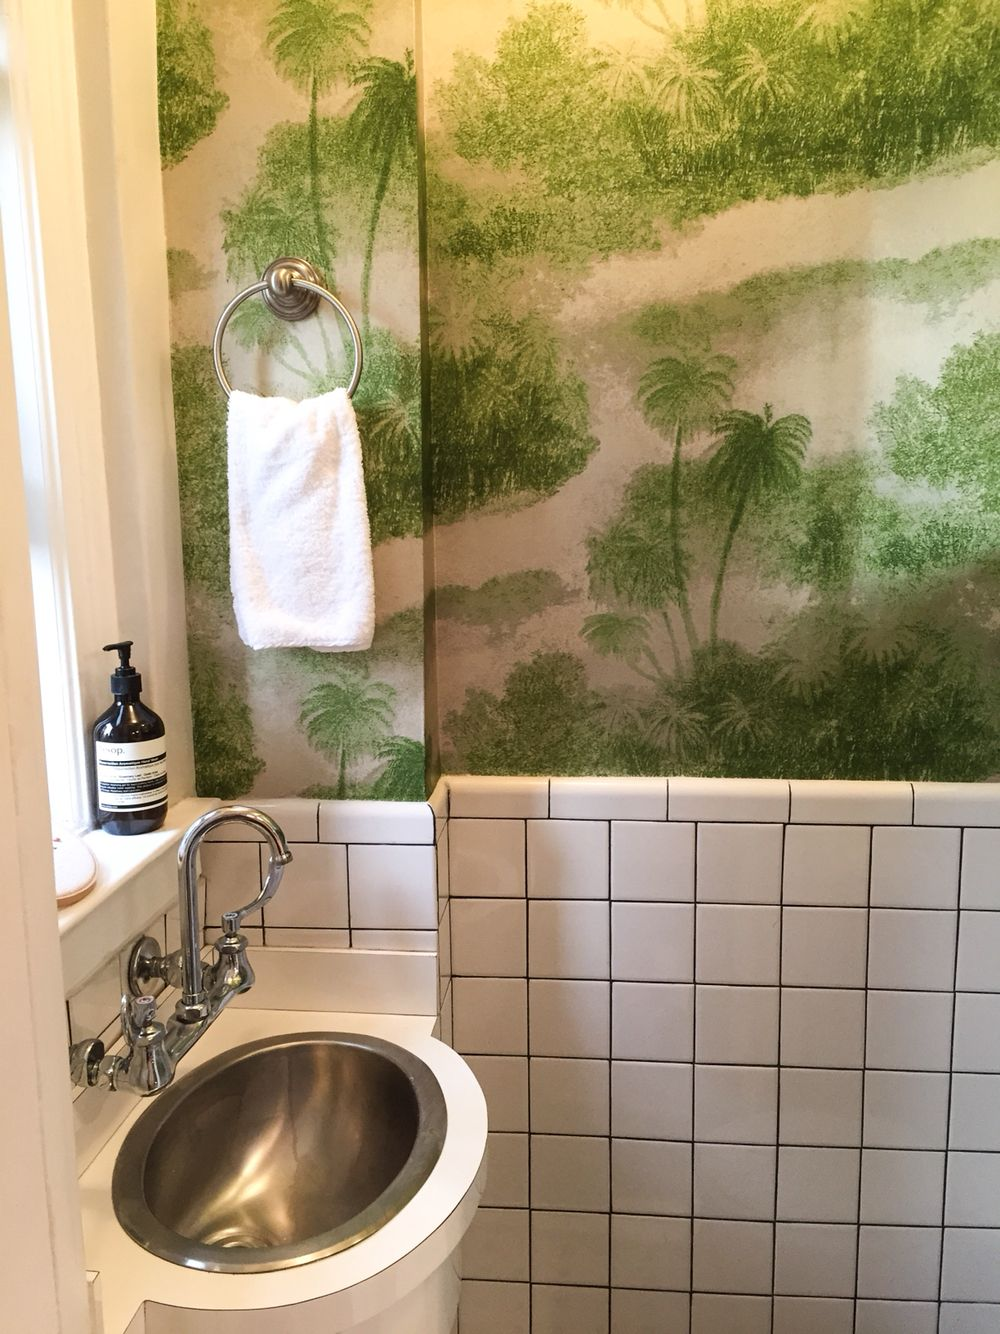 NYC Powder Room with California Vibes. #wallpaper #california #NYC #apartment